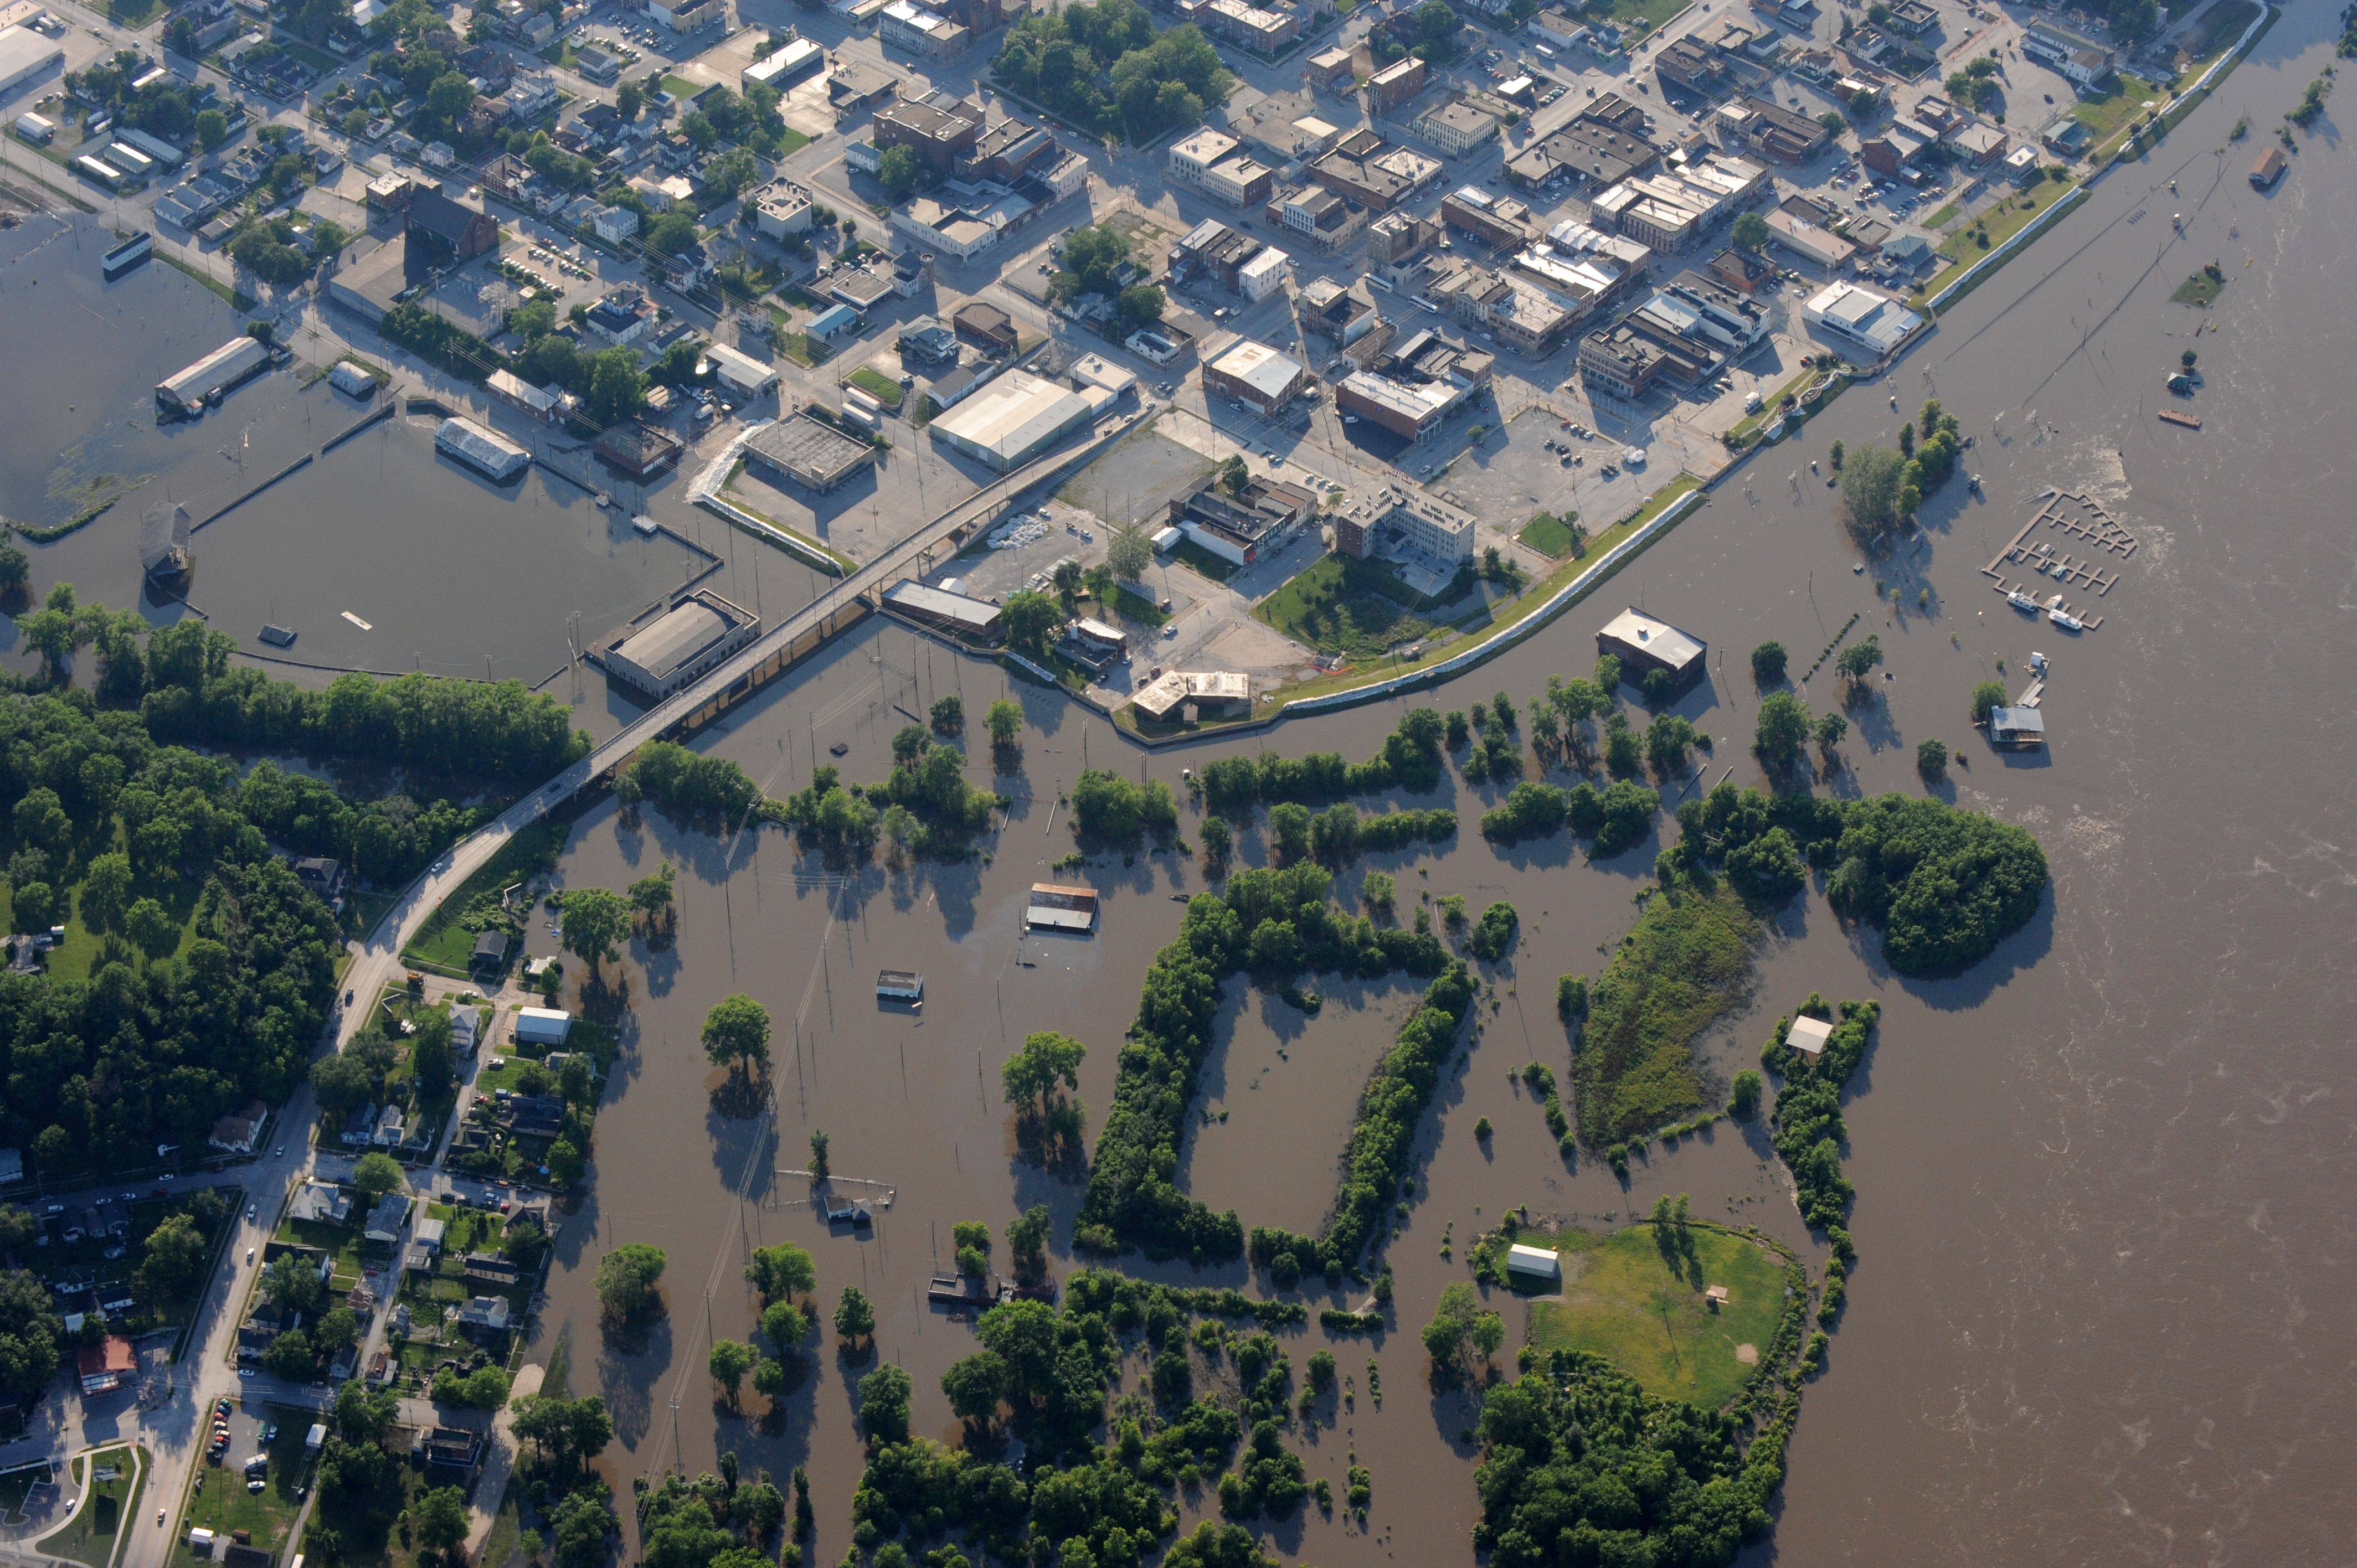 February Floods are a Timely Reminder to Plan for Flood